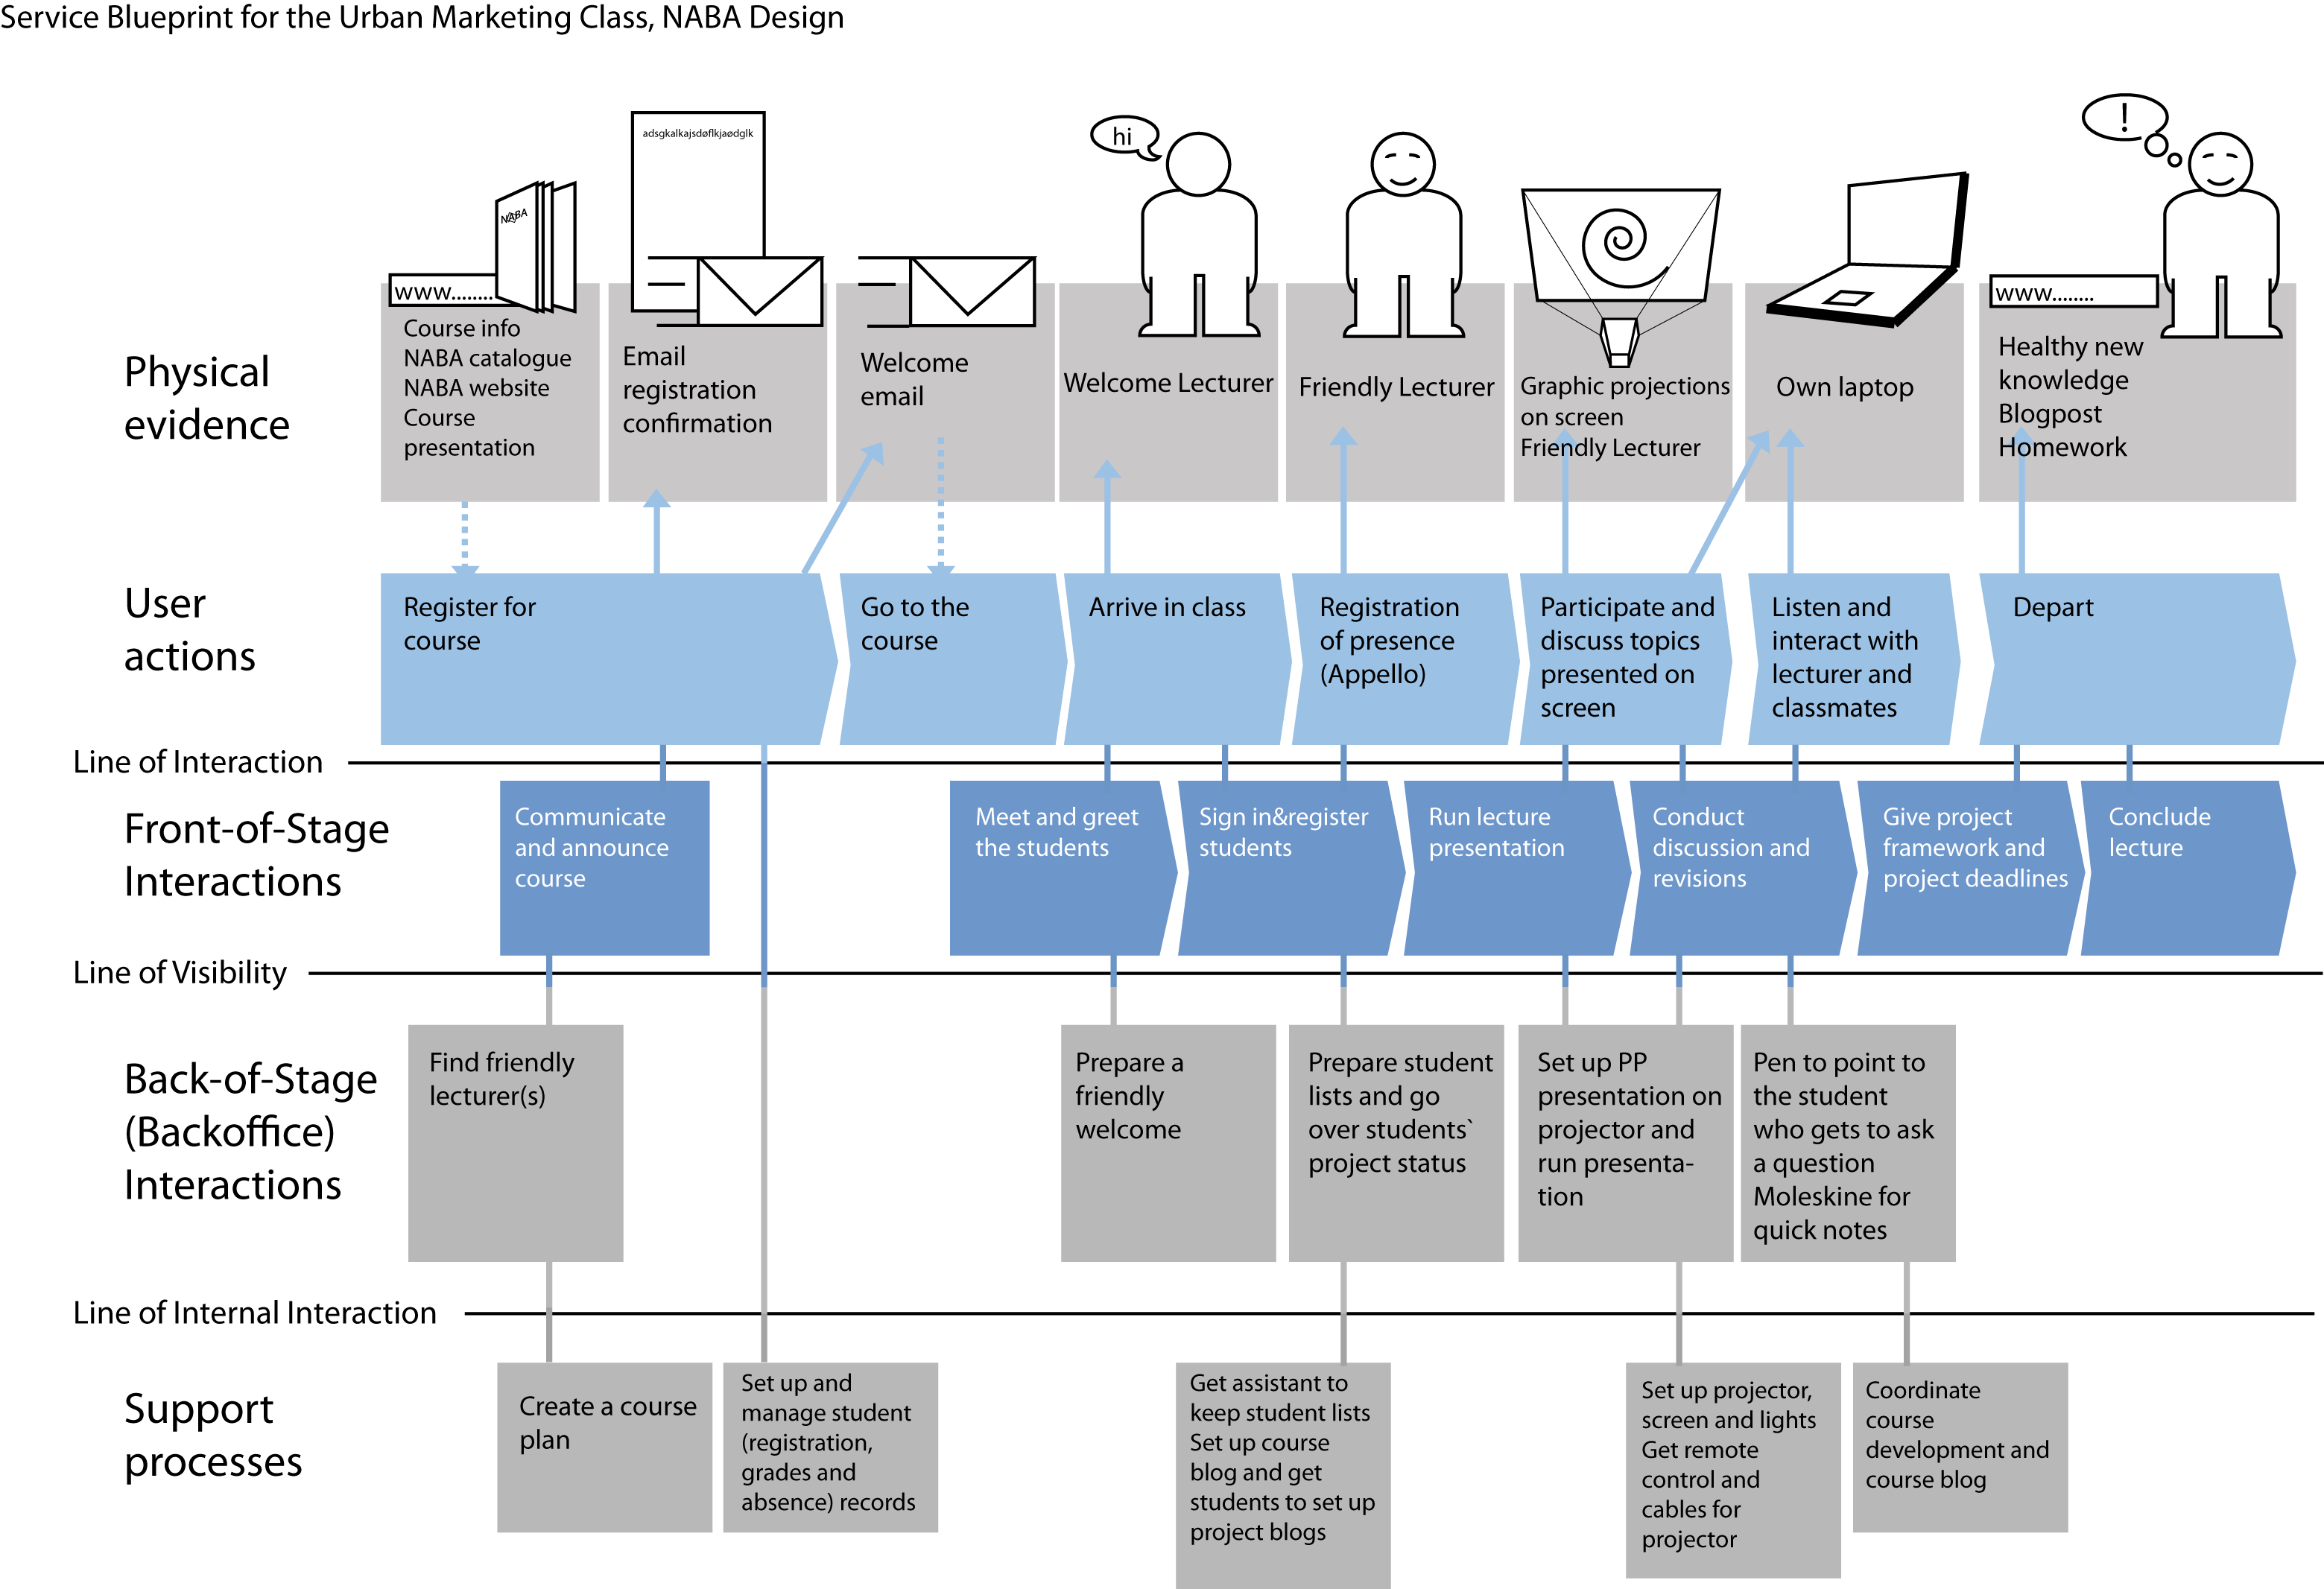 Customer journey vs service blueprint full hd pictures 4k ultra service blueprints definition nng service blueprint example the difference between a journey map and a service blueprint these three places are where malvernweather Gallery